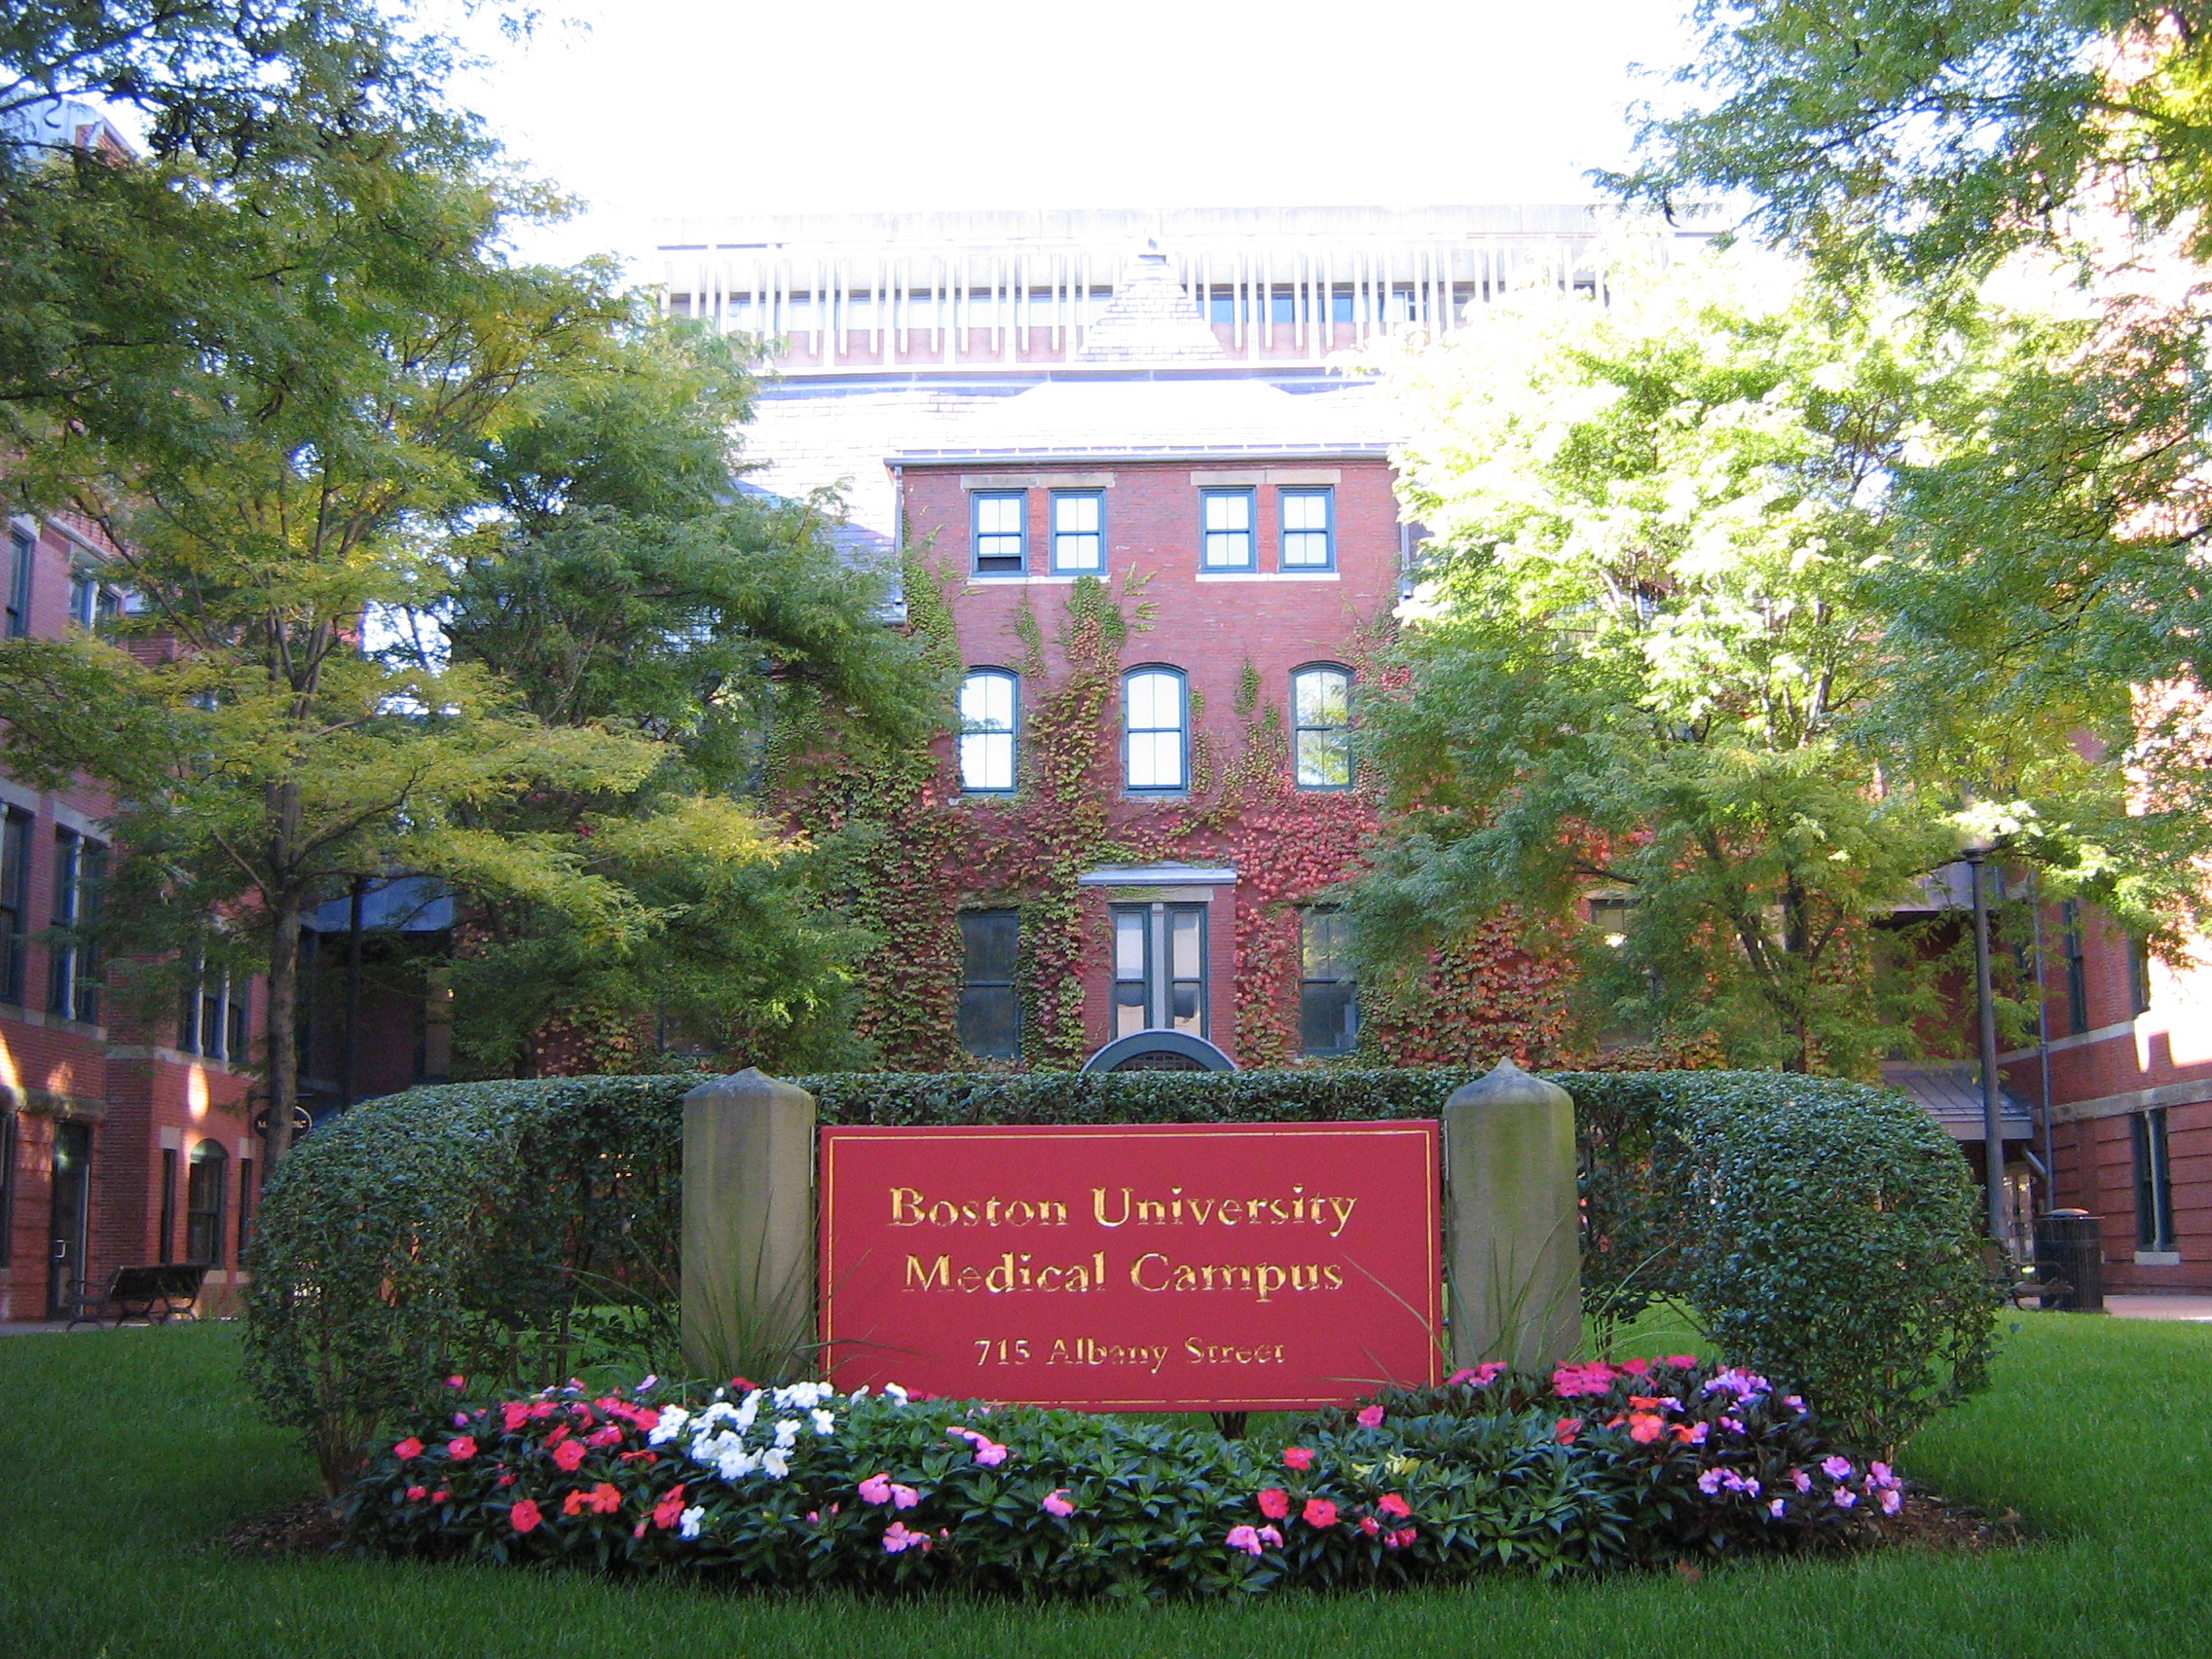 3%2f39%2fboston university medical campus 01